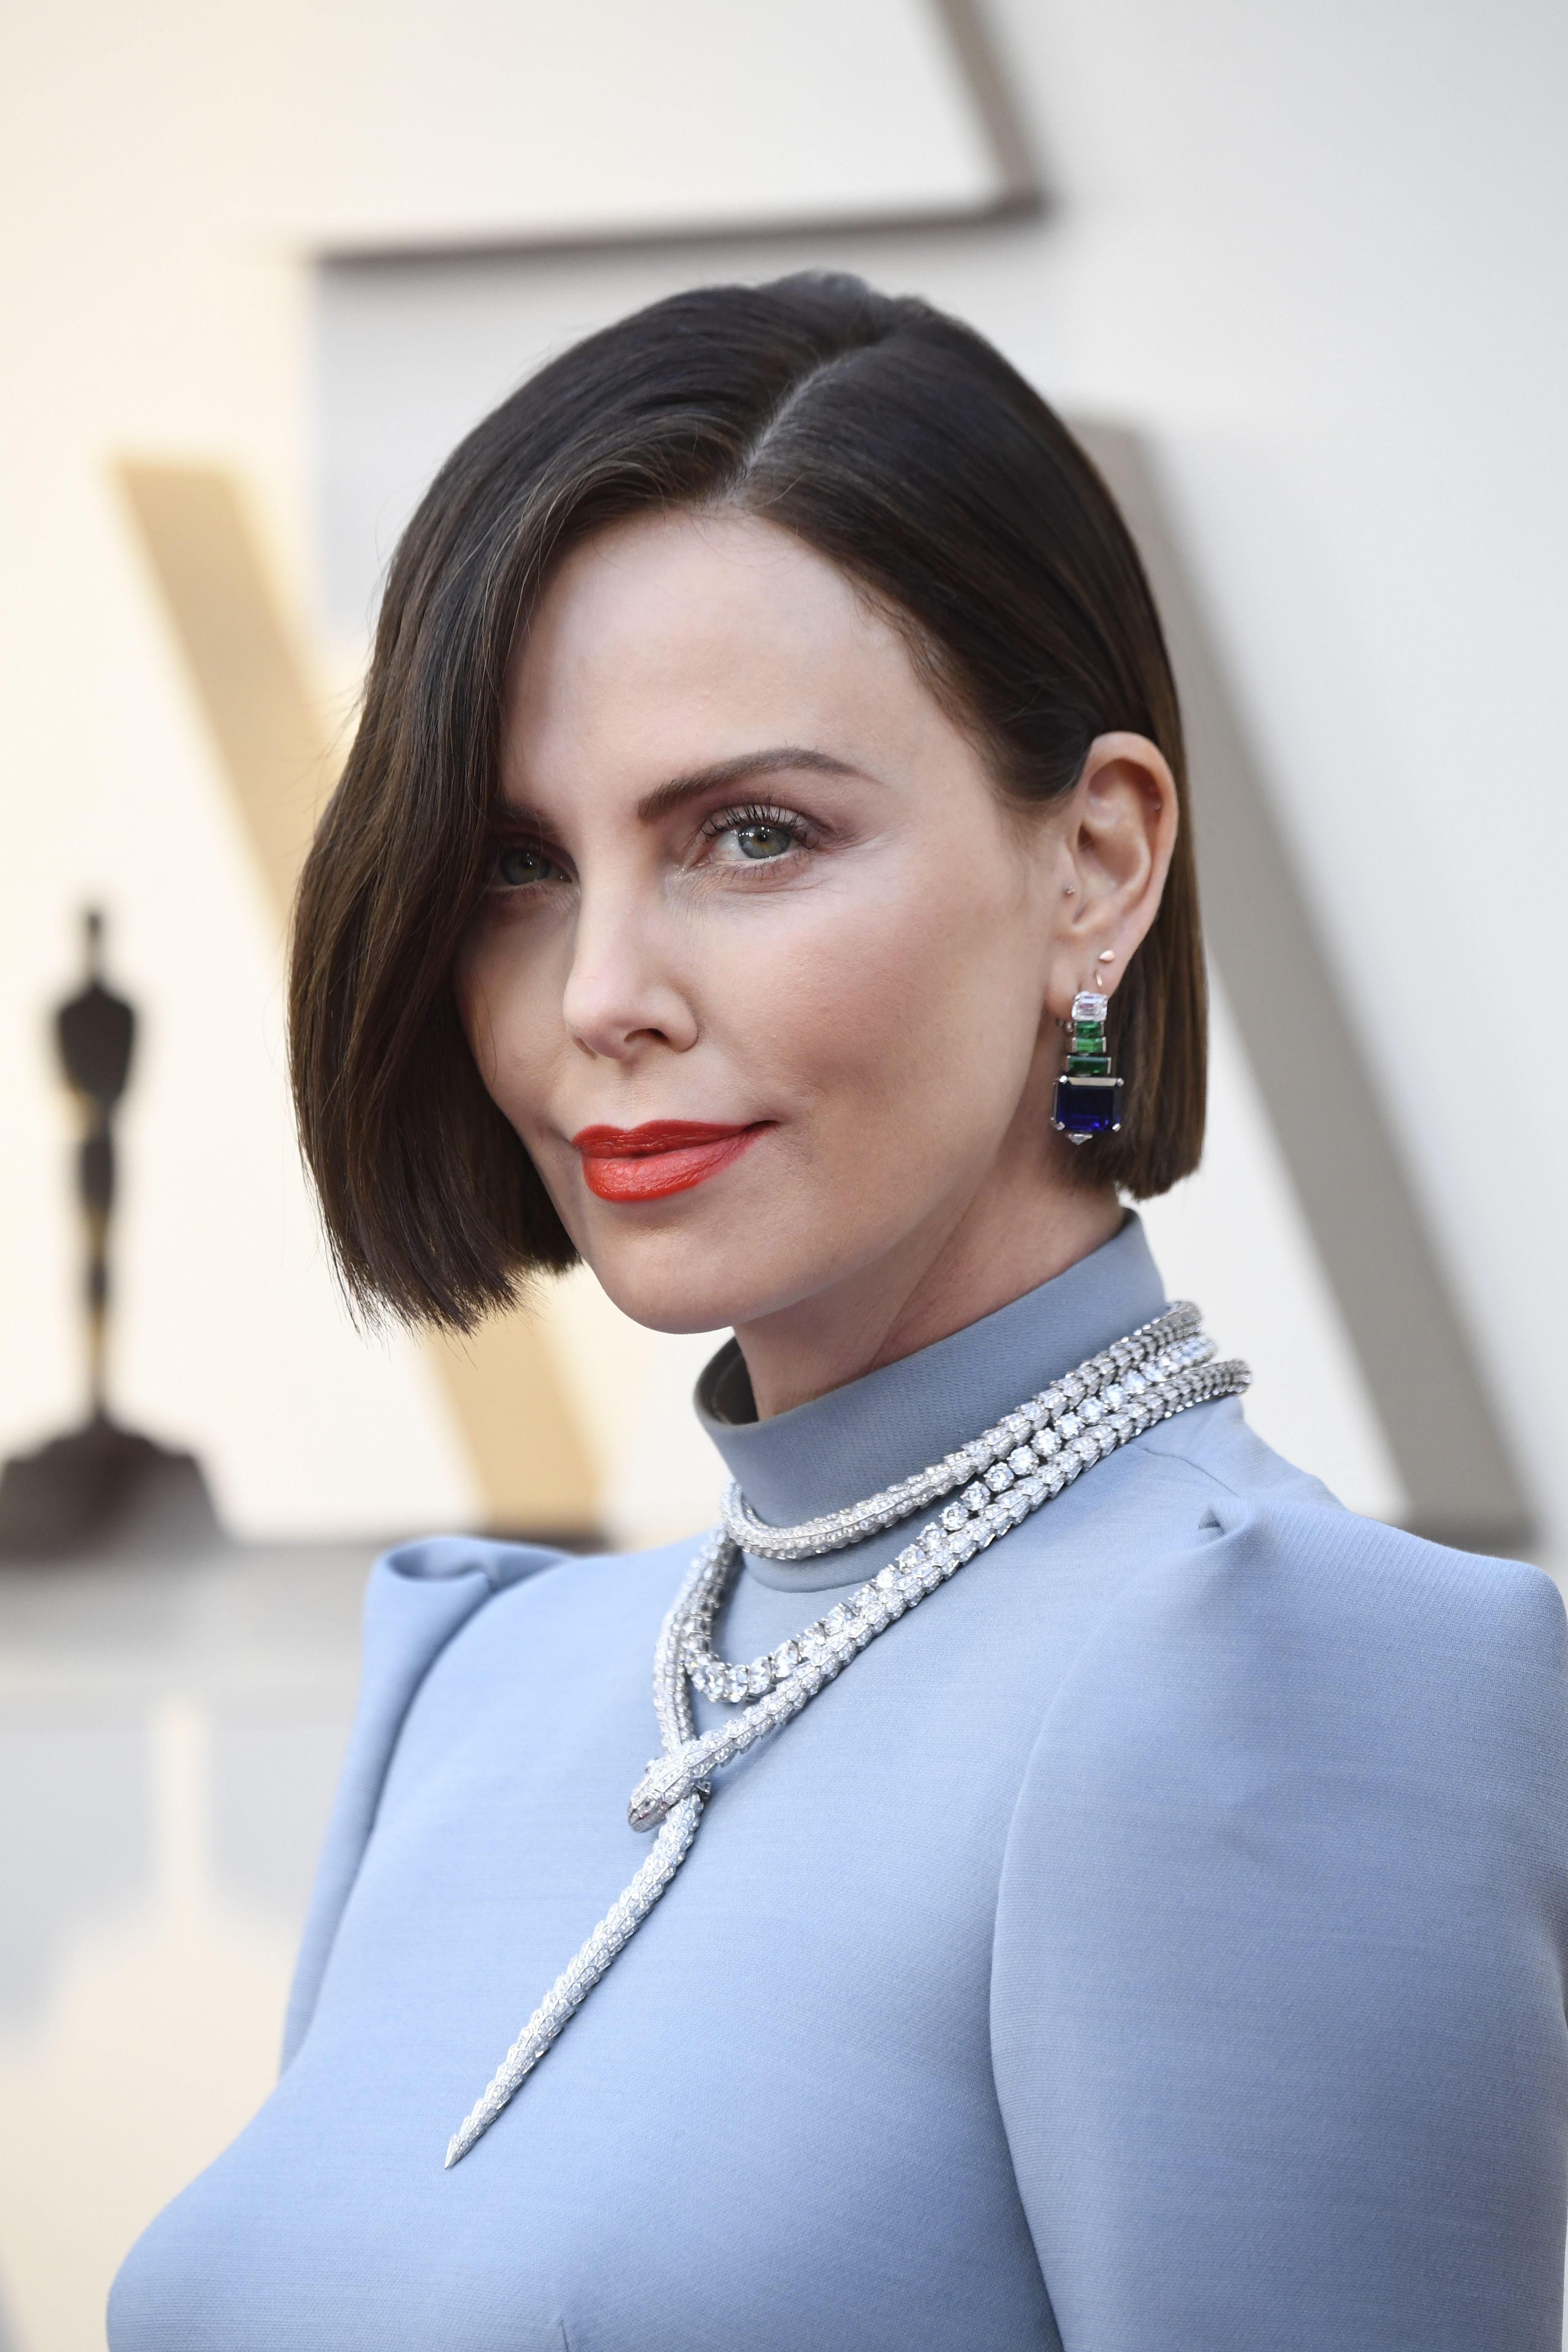 Charlize Theron S Brown Hair At The 2019 Oscars Is One Of Her Boldest Looks Yet